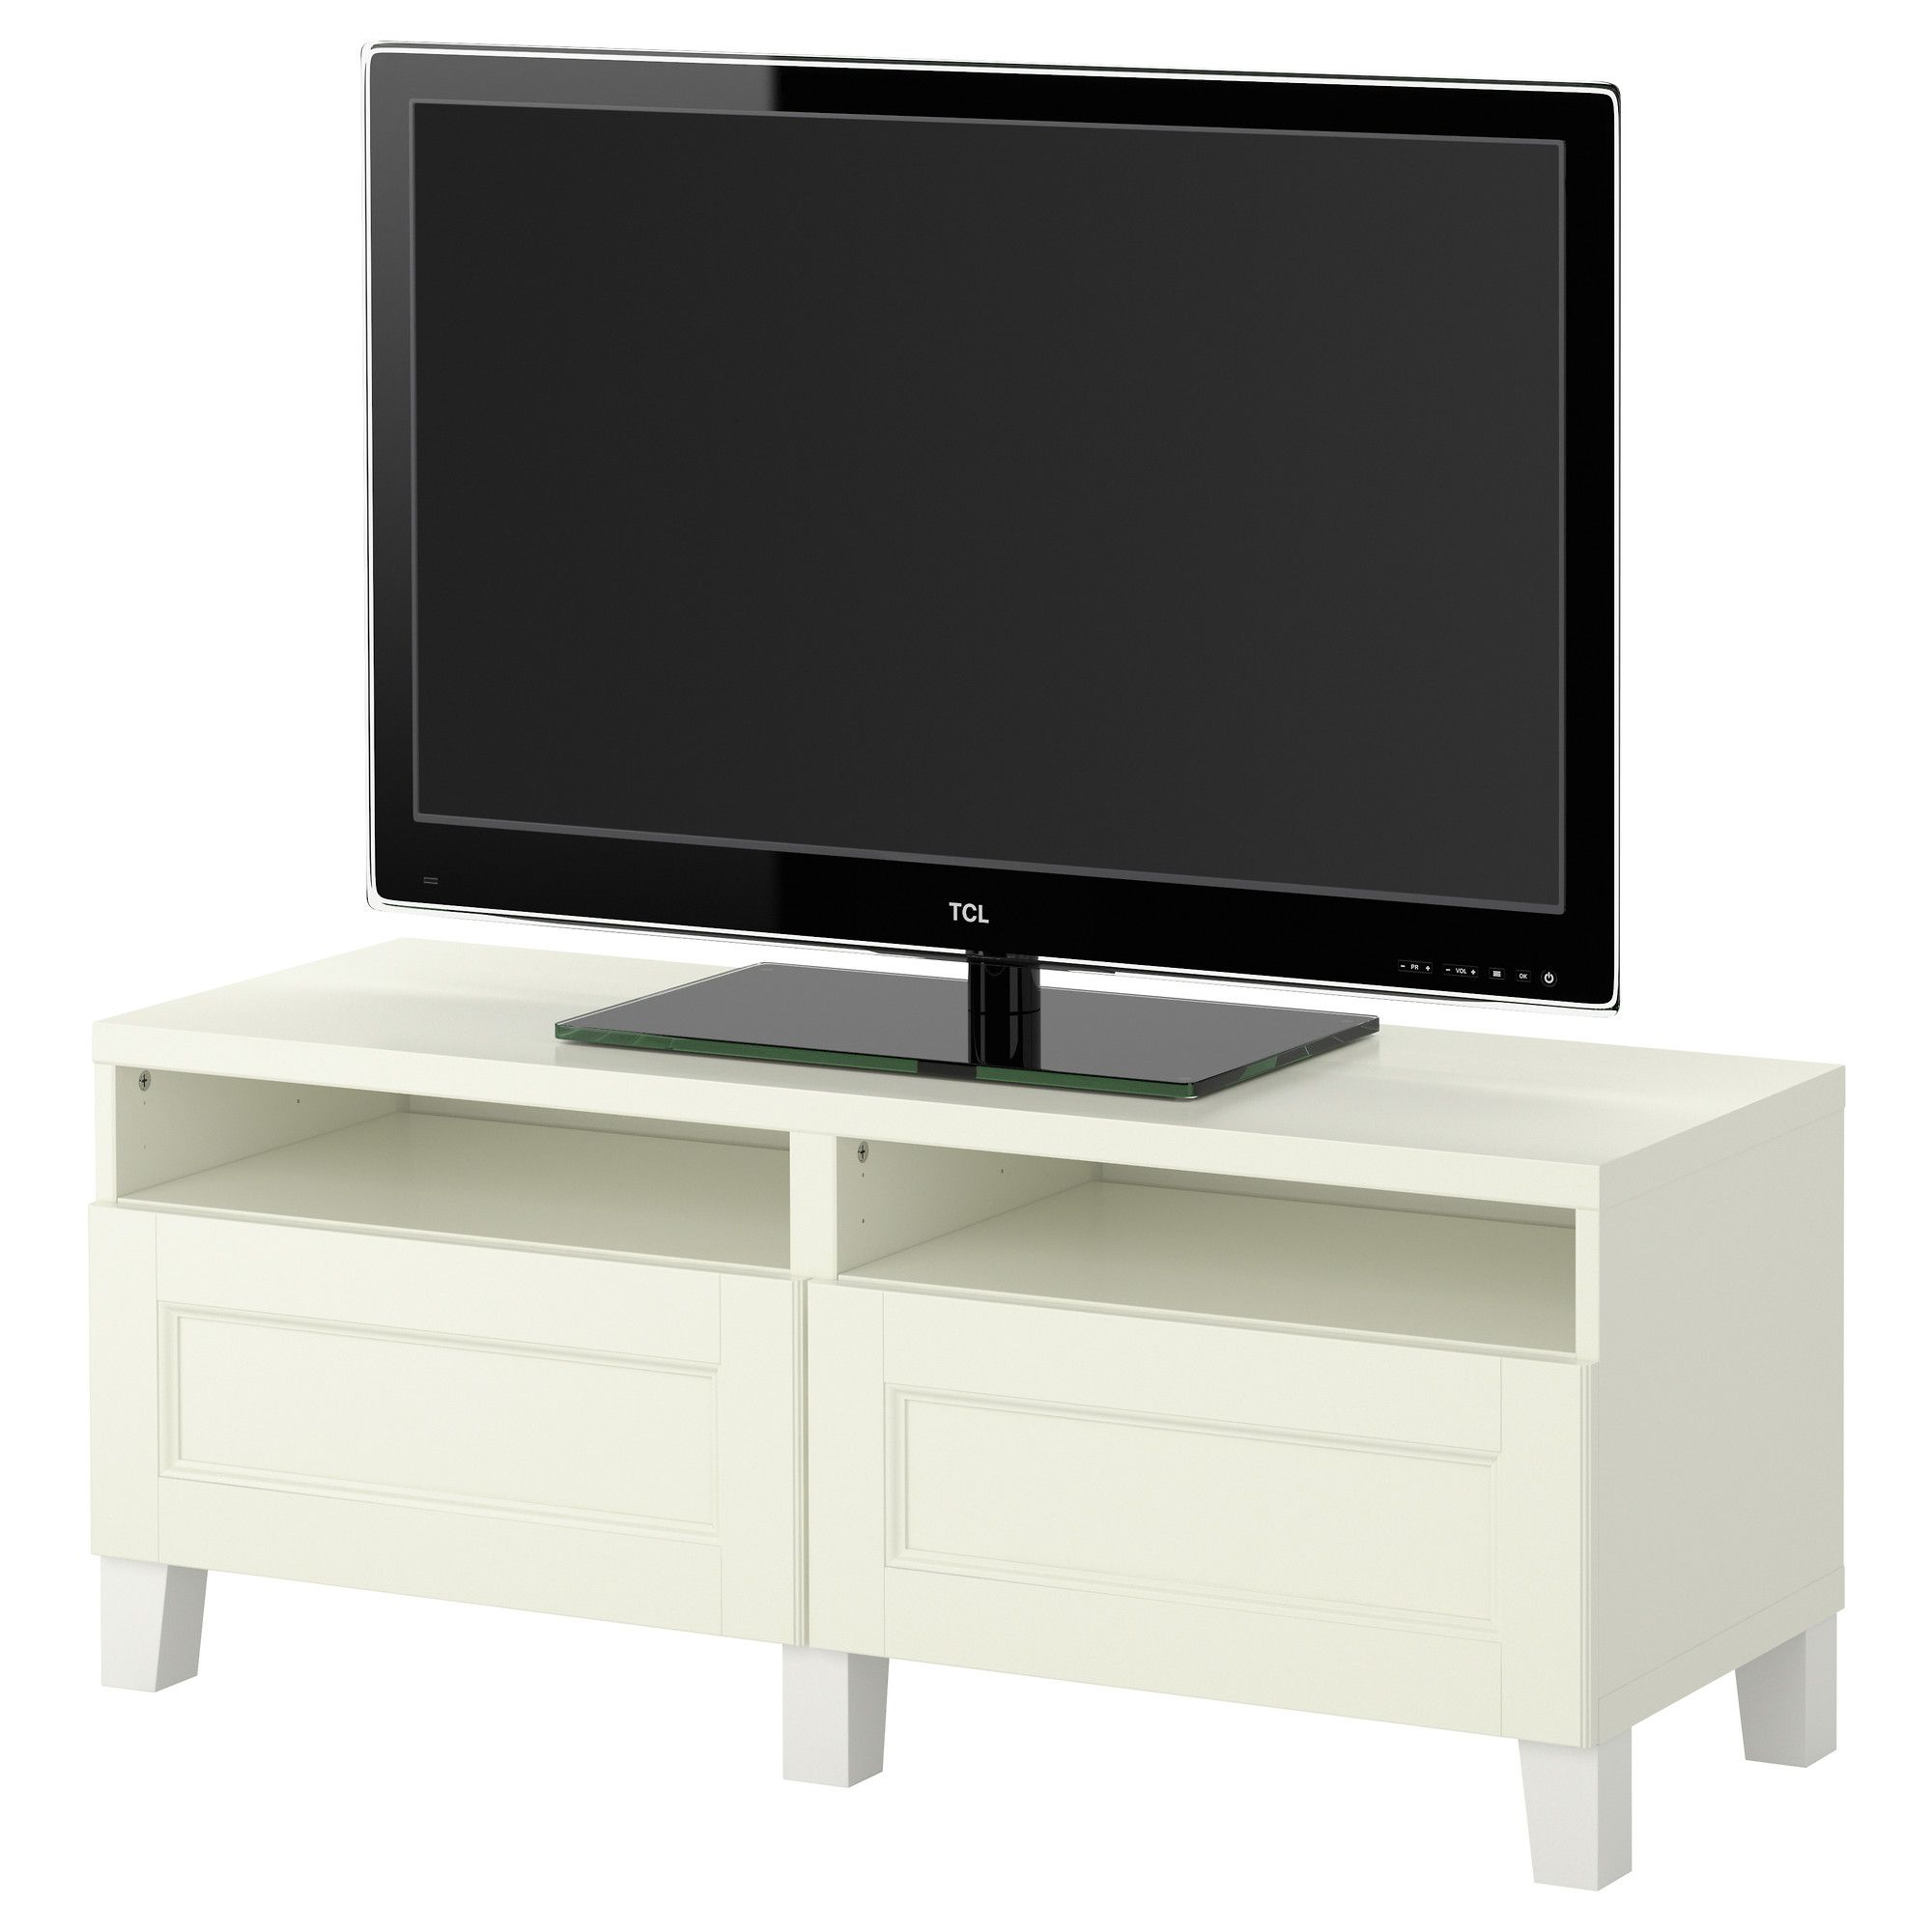 Best mobile tv con cassetti ikea 120 products i for Ikea mobile tv